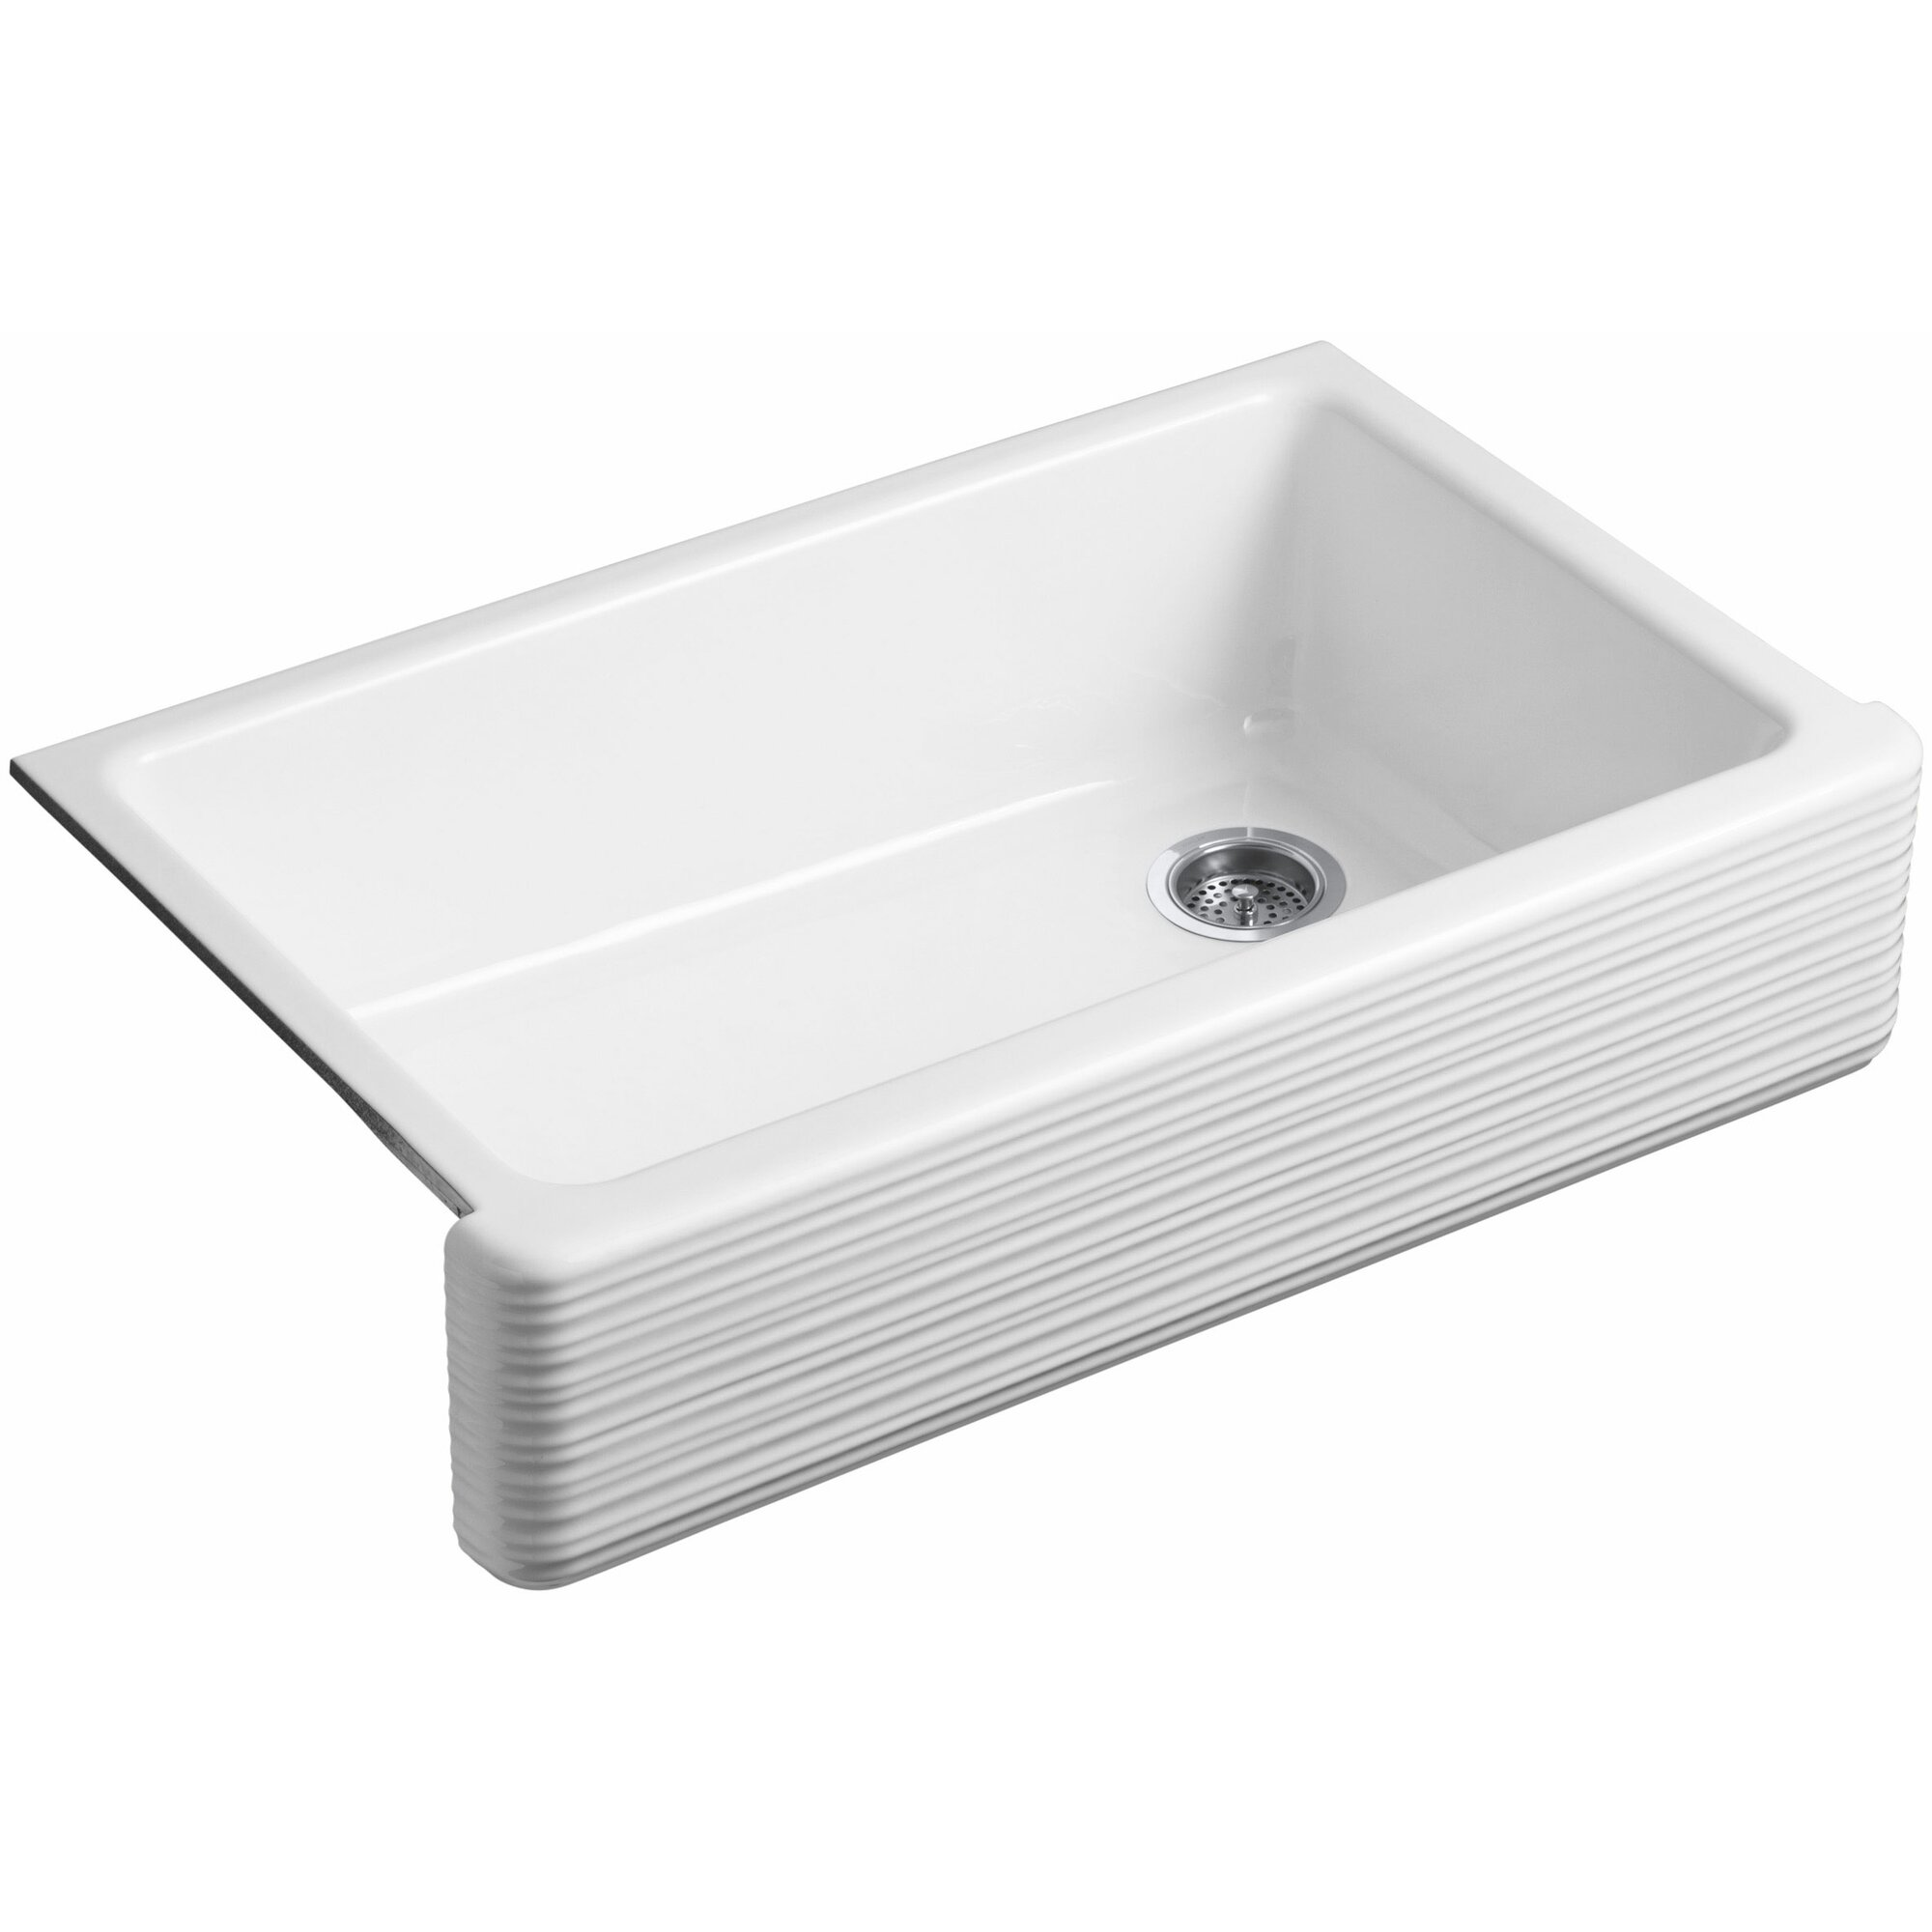 whitehaven 3569 x 2156 farmhouse single bowl kitchen sink - Bowl Kitchen Sink